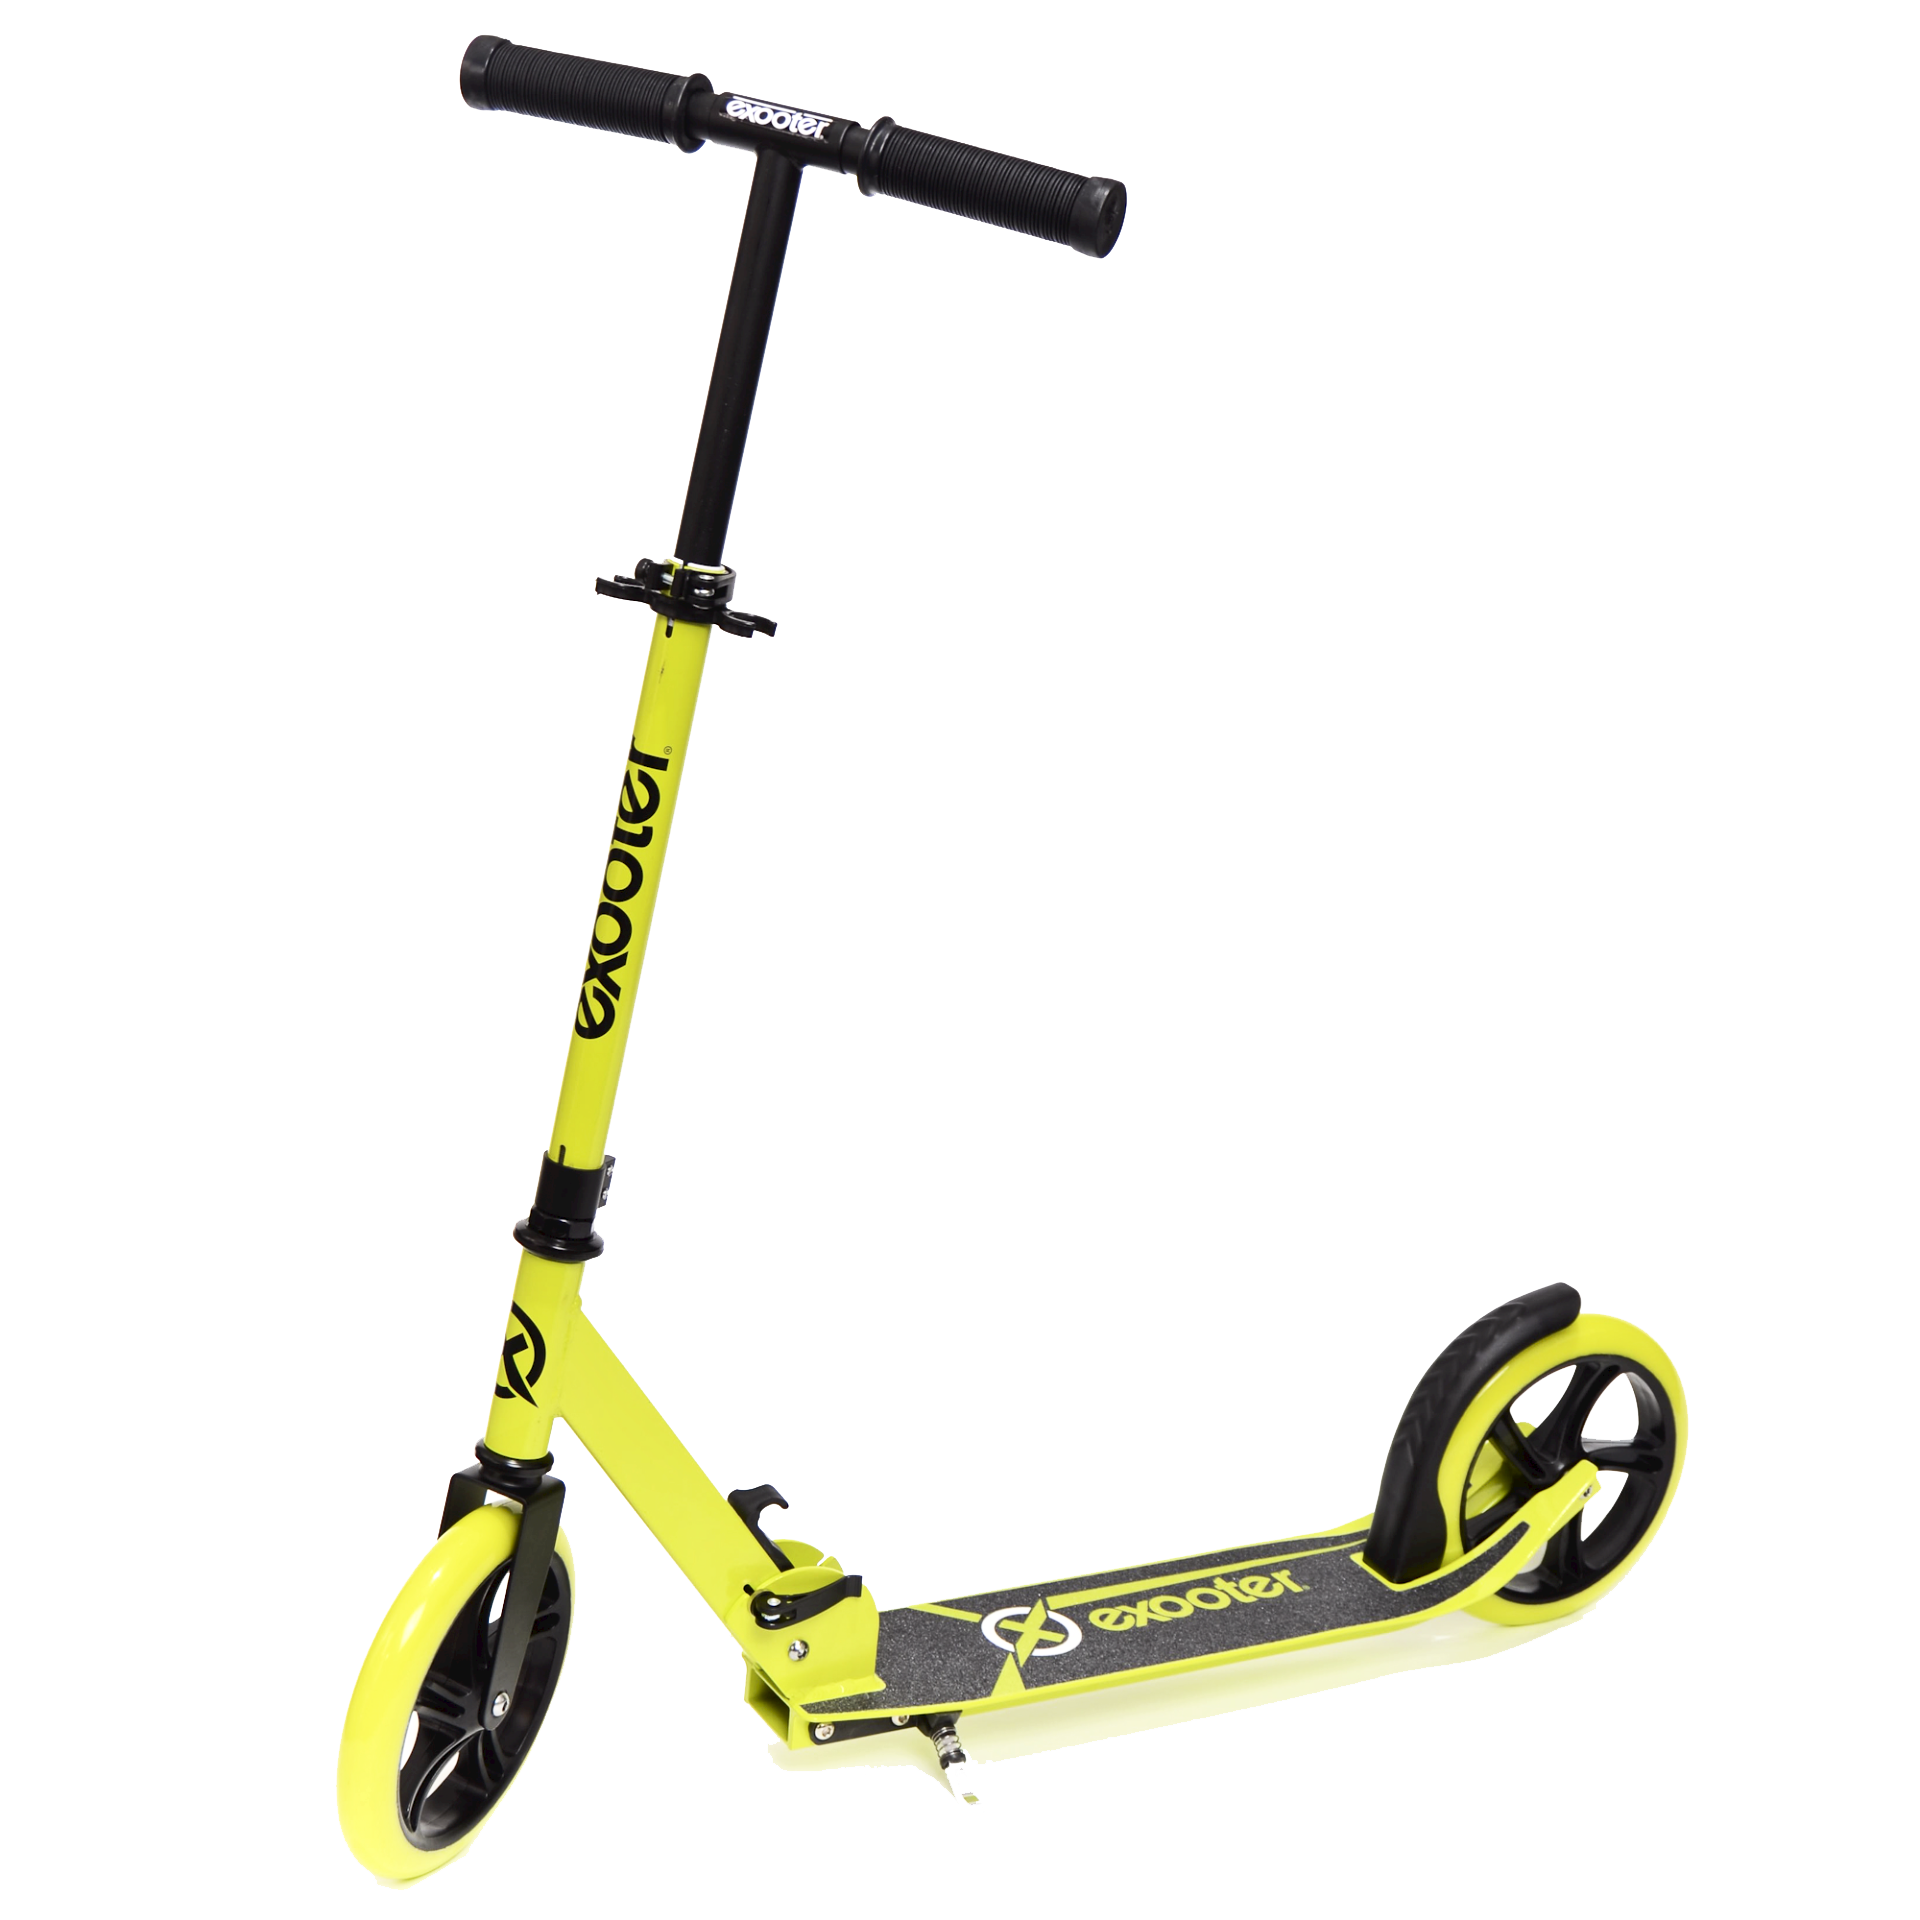 Download kick transparent background. Scooter clipart gym scooter